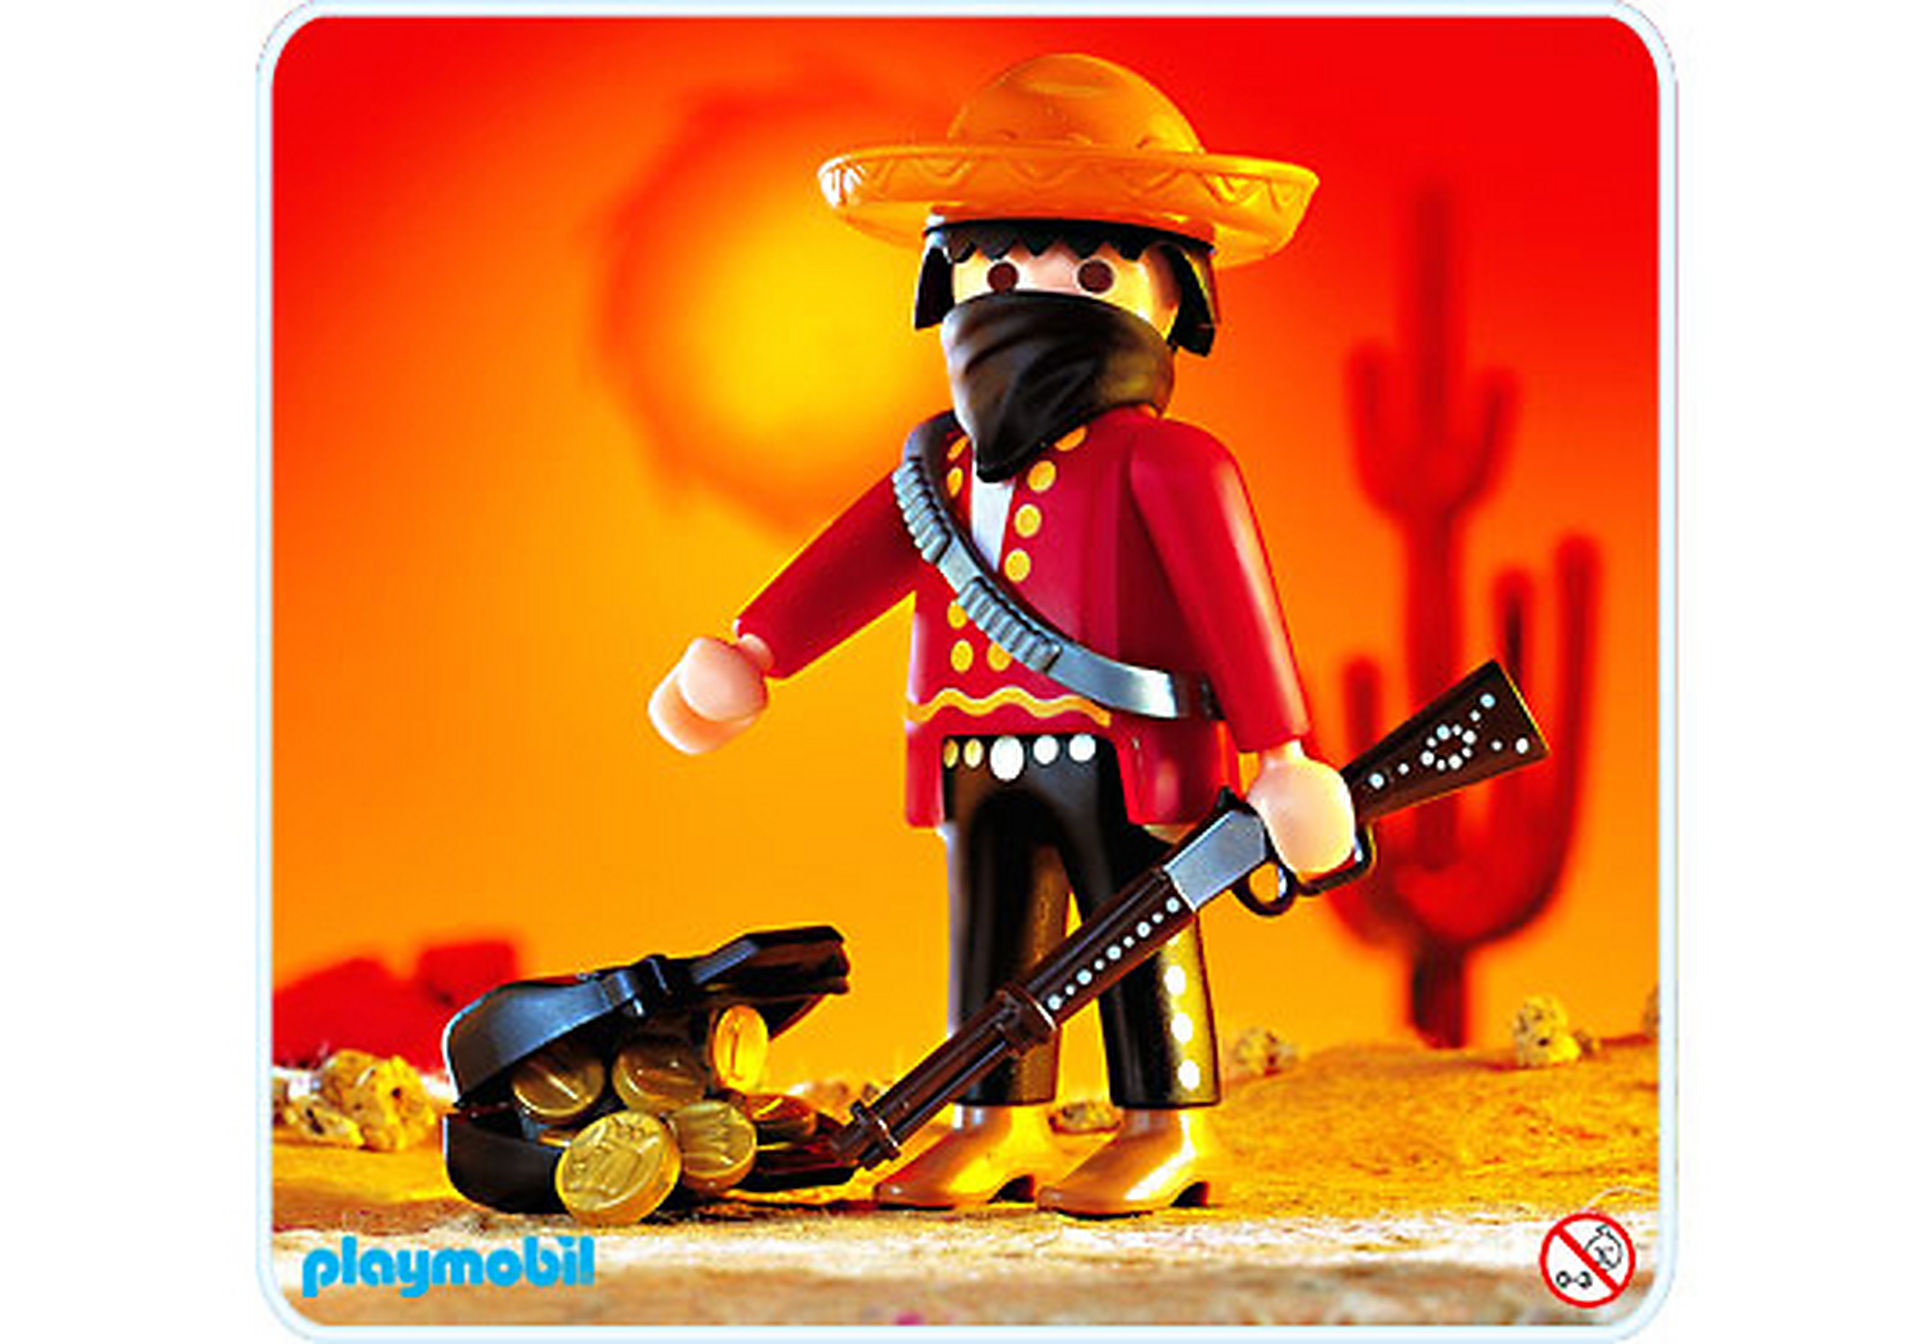 http://media.playmobil.com/i/playmobil/4544-A_product_detail/Bandito